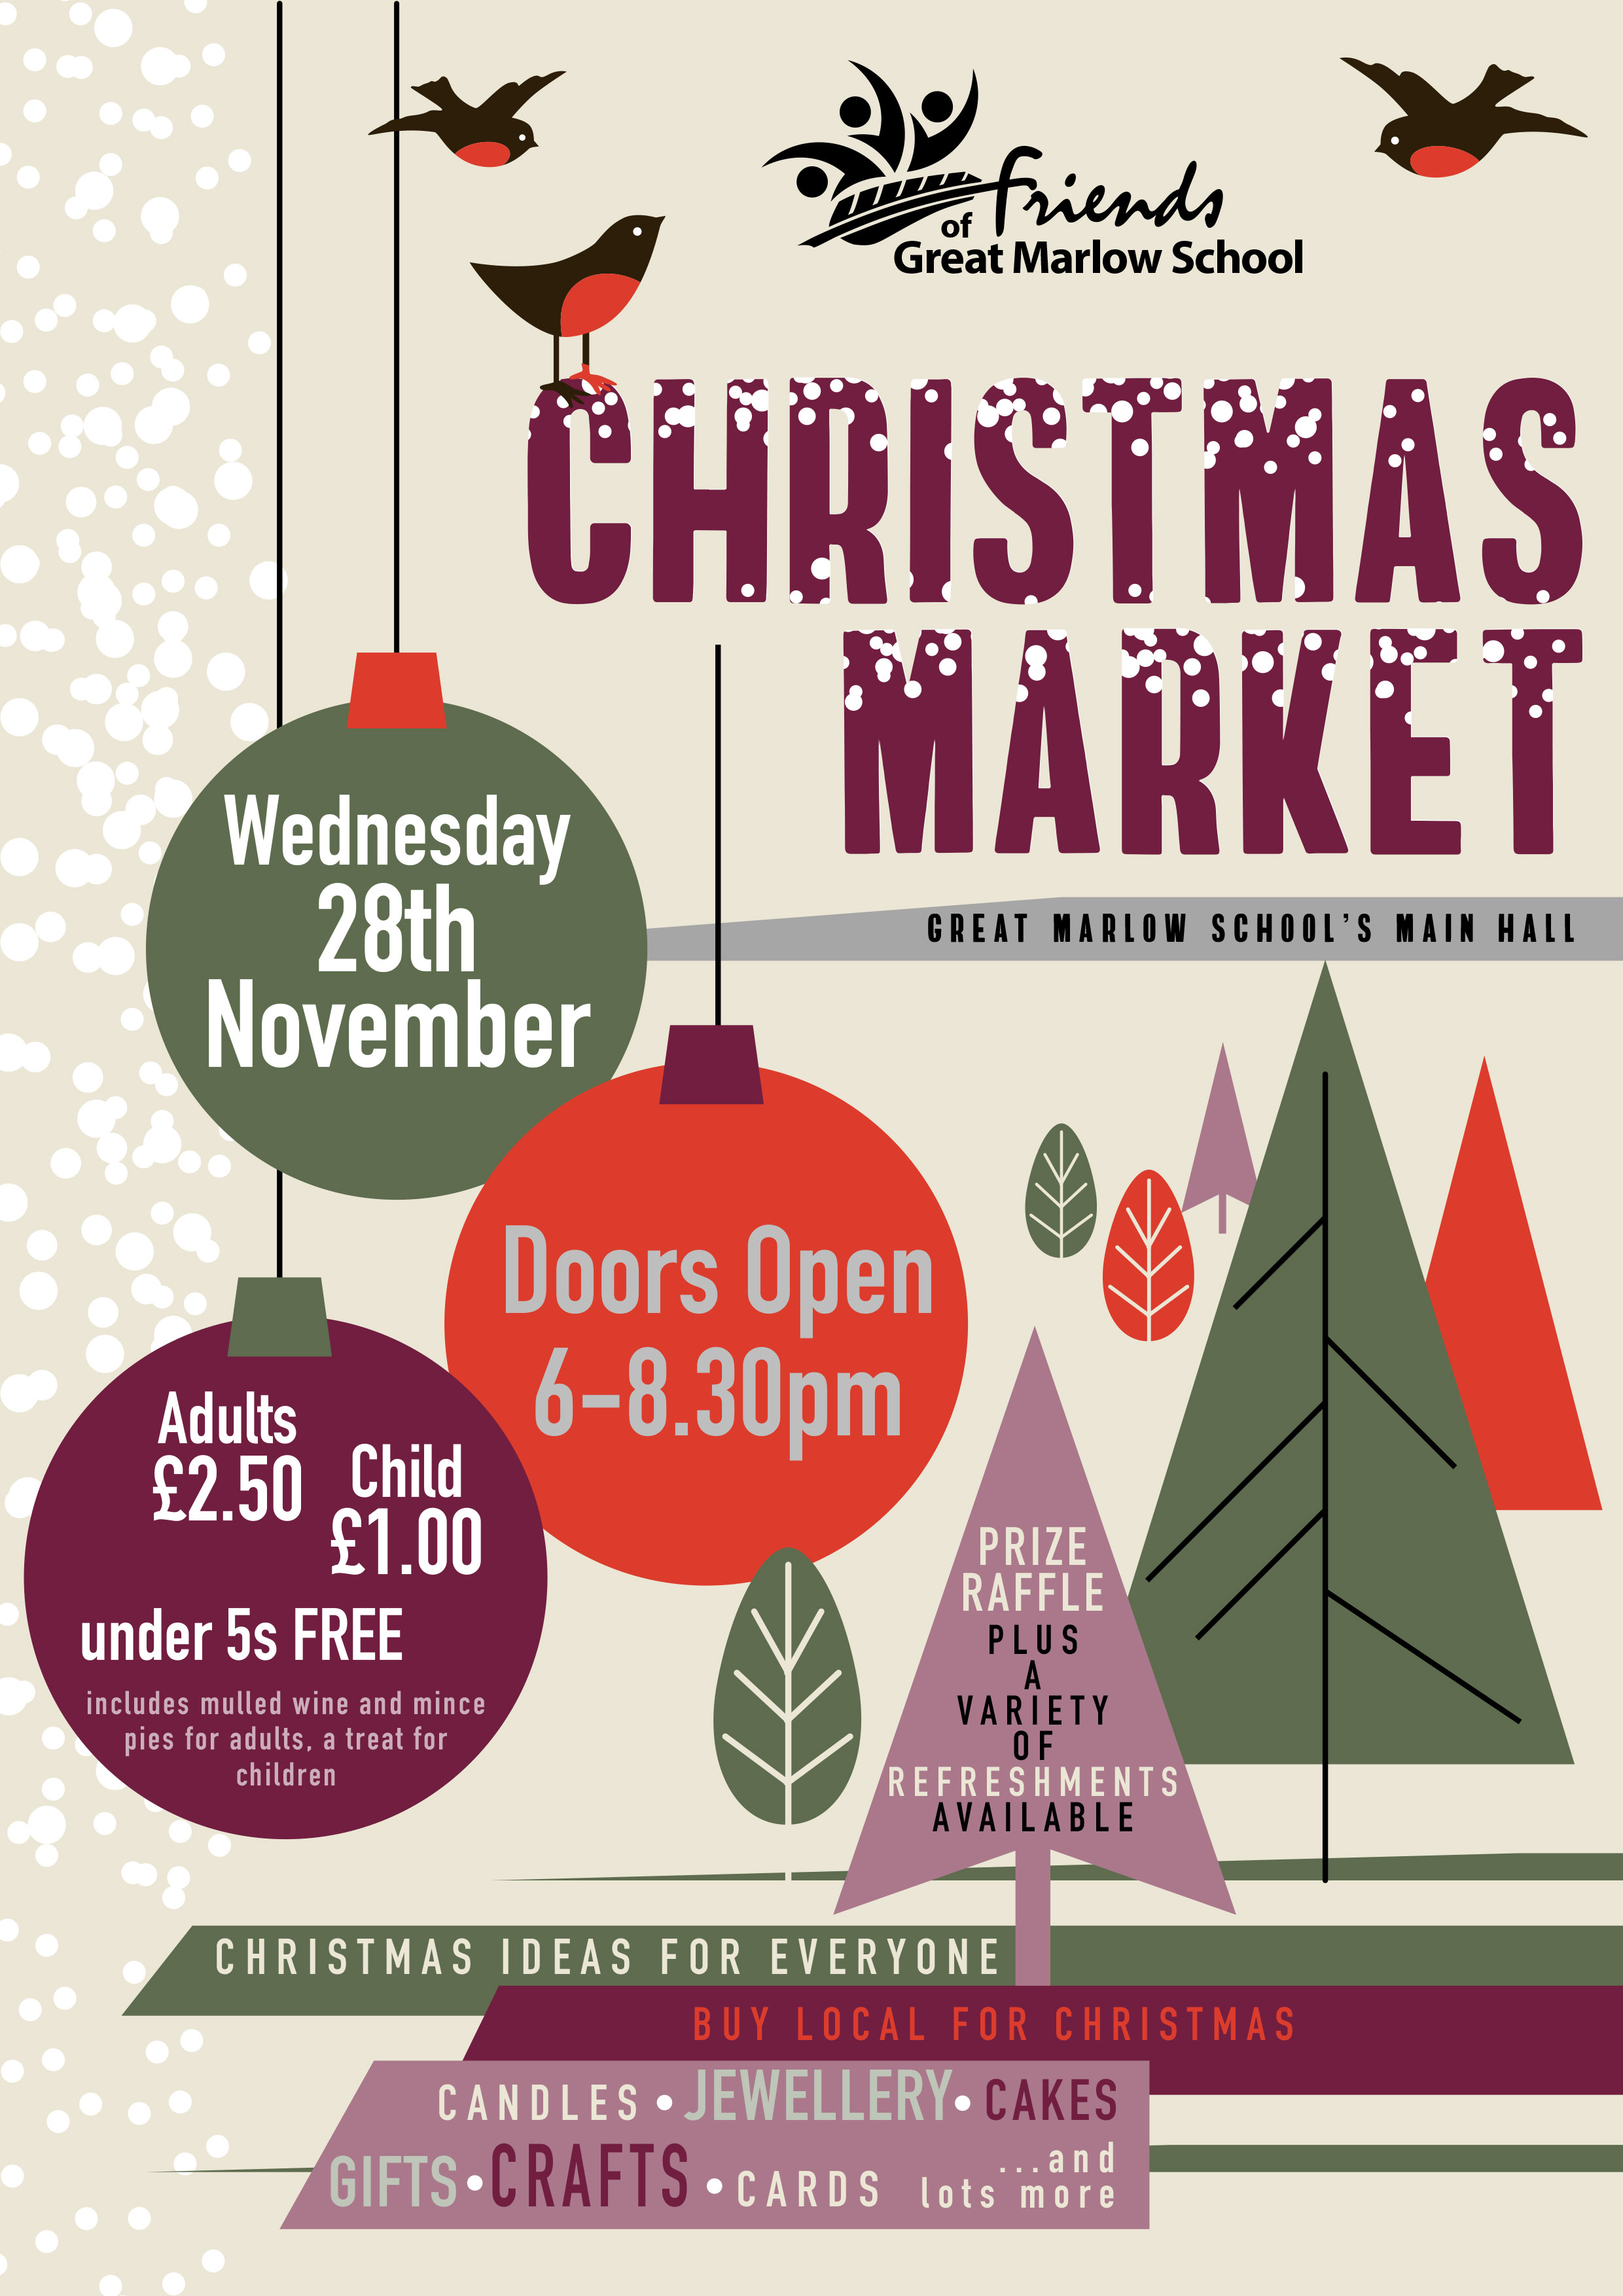 Today 6pm 8 30pm Fogms Christmas Market 60 Stalls To Buy Unique Christmas Gifts 28th November 2018 Great Marlow School Website